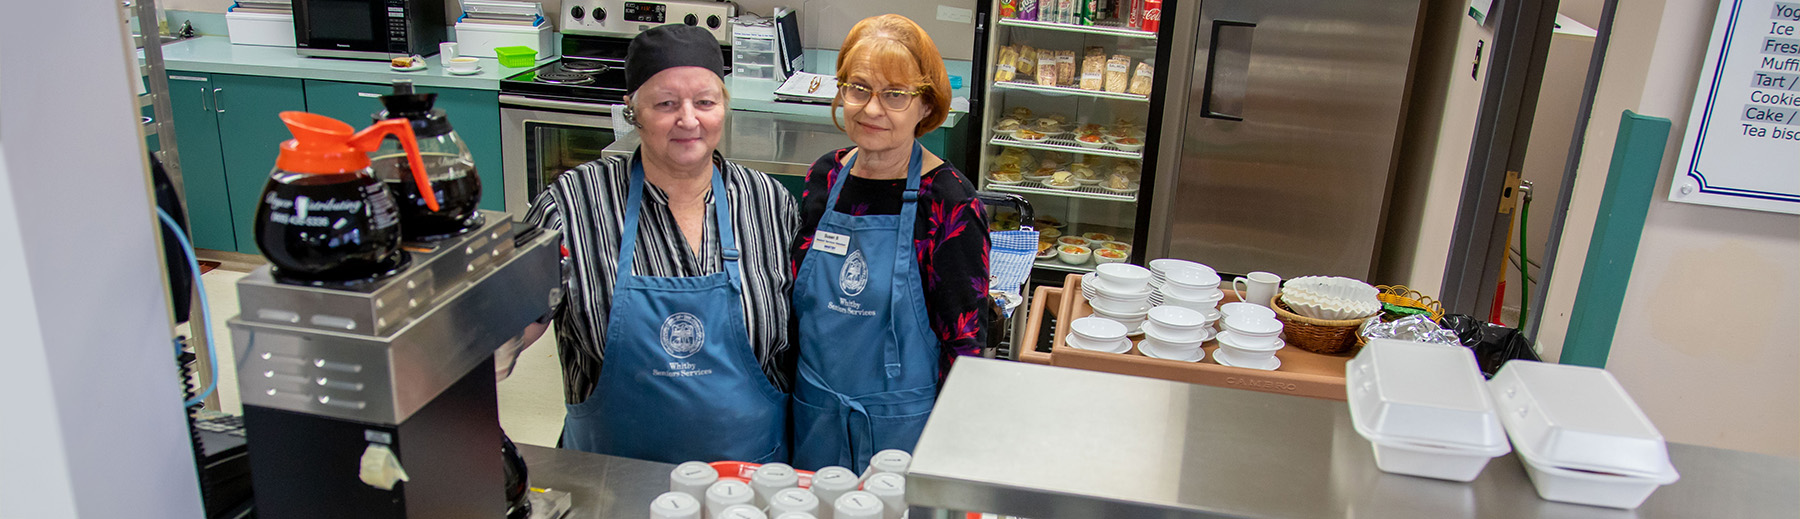 Two workers wear aprons behind a counter in a restaurant